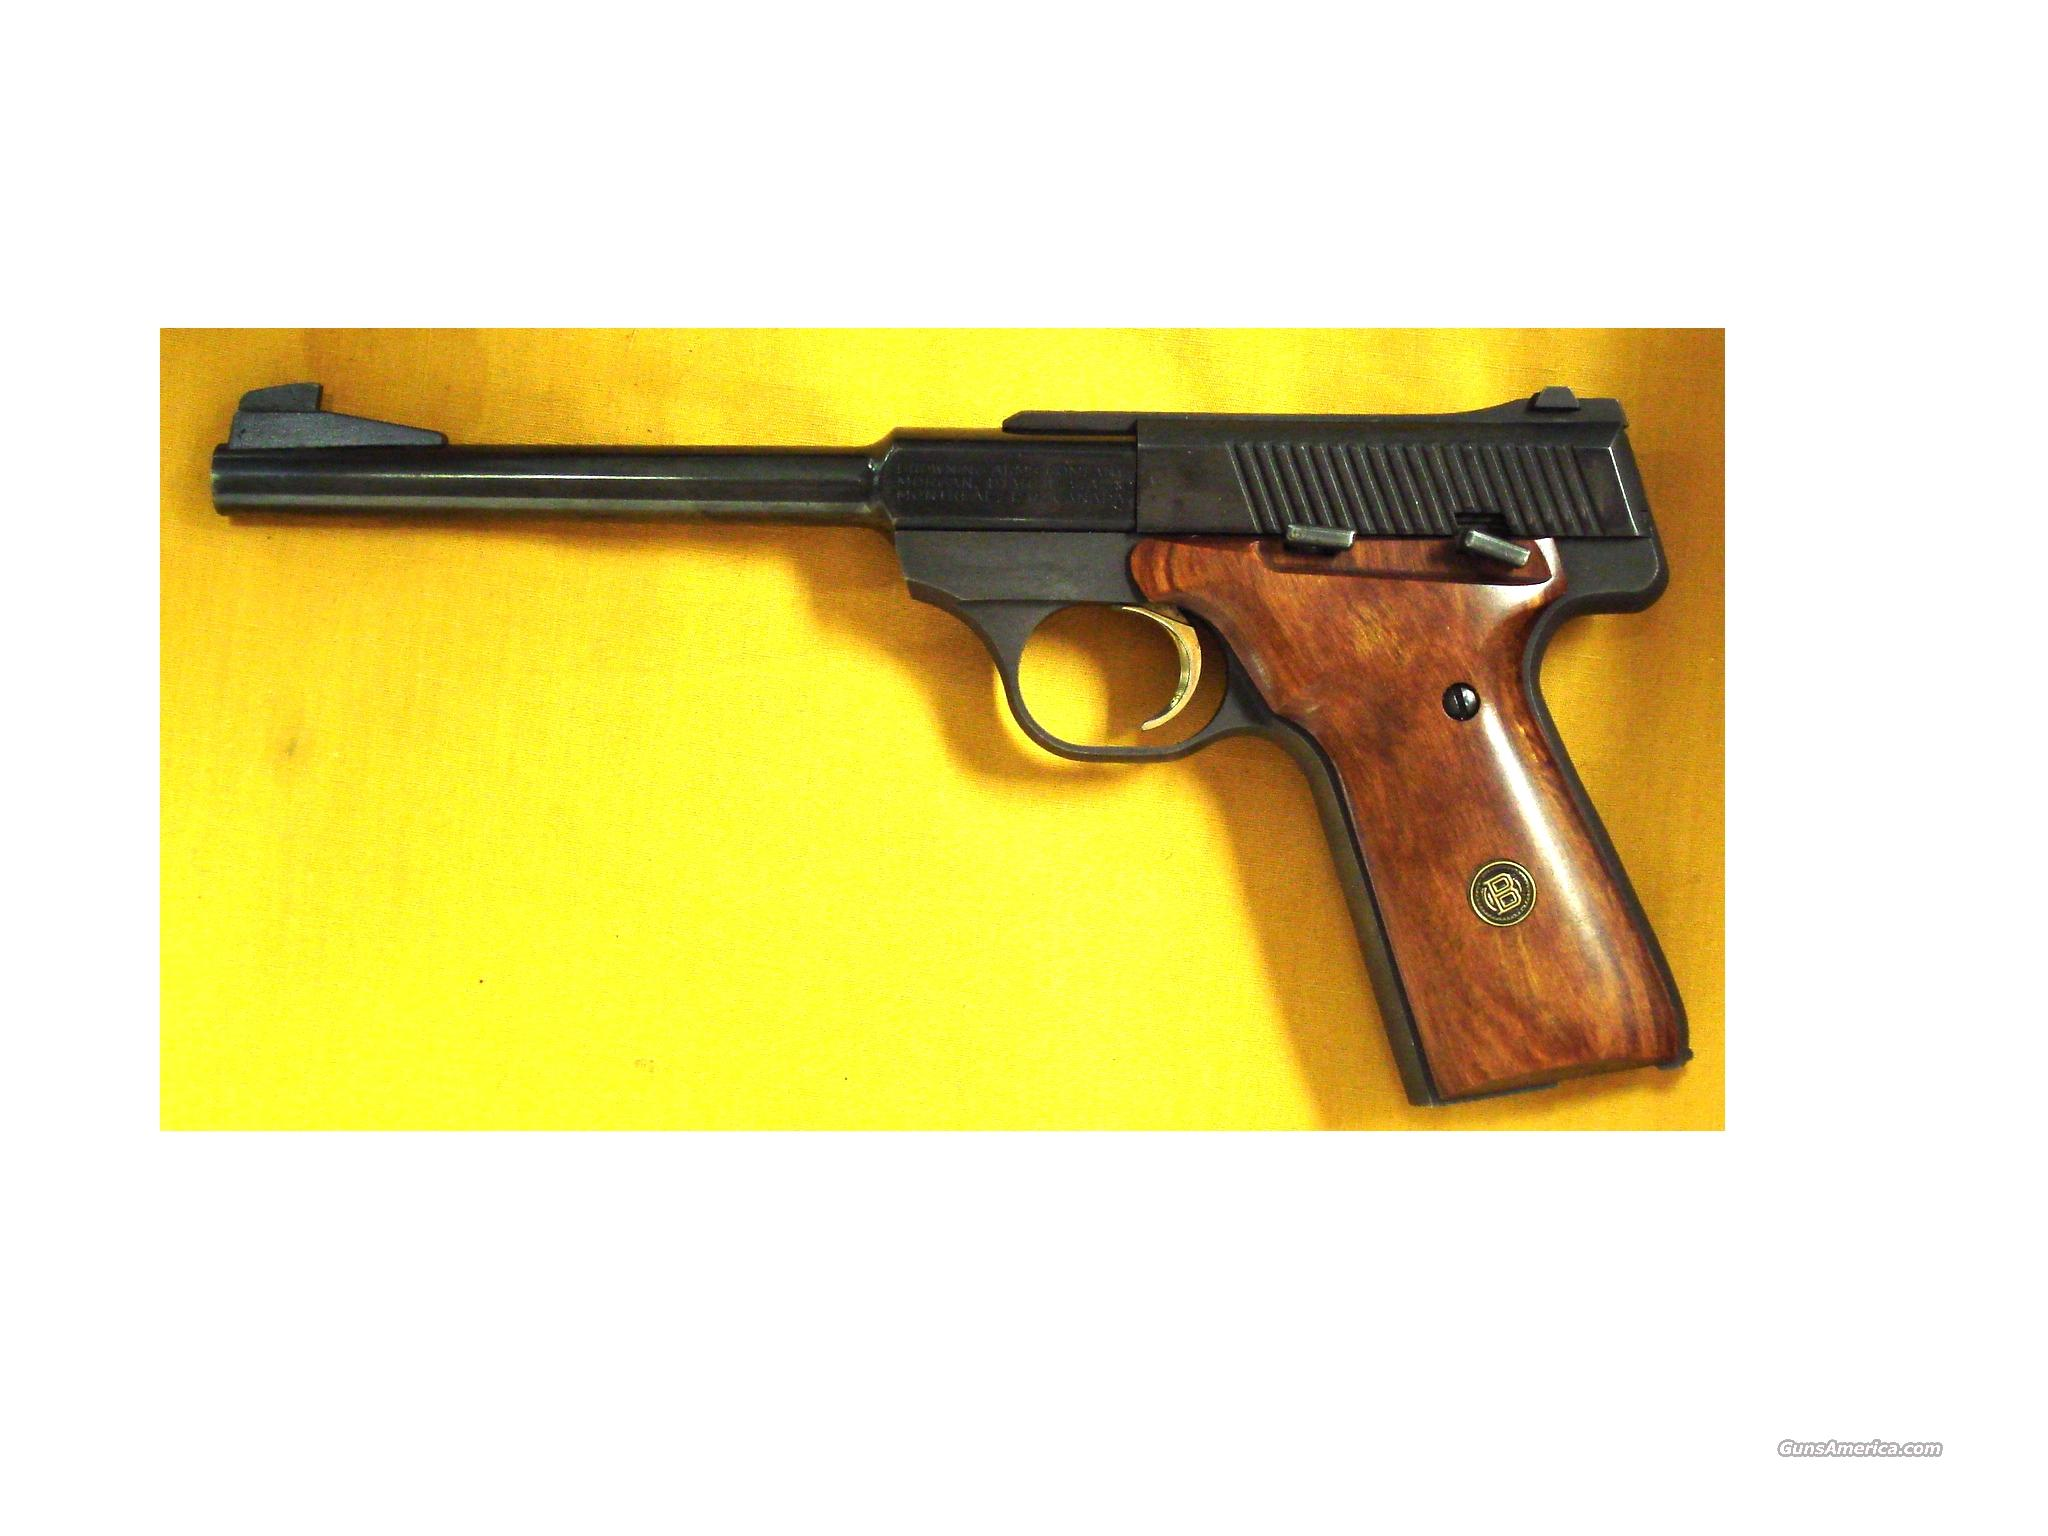 "BROWNING CHALLENGER .22LR 6 3/4""BBL  Guns > Pistols > Browning Pistols > Other Autos"